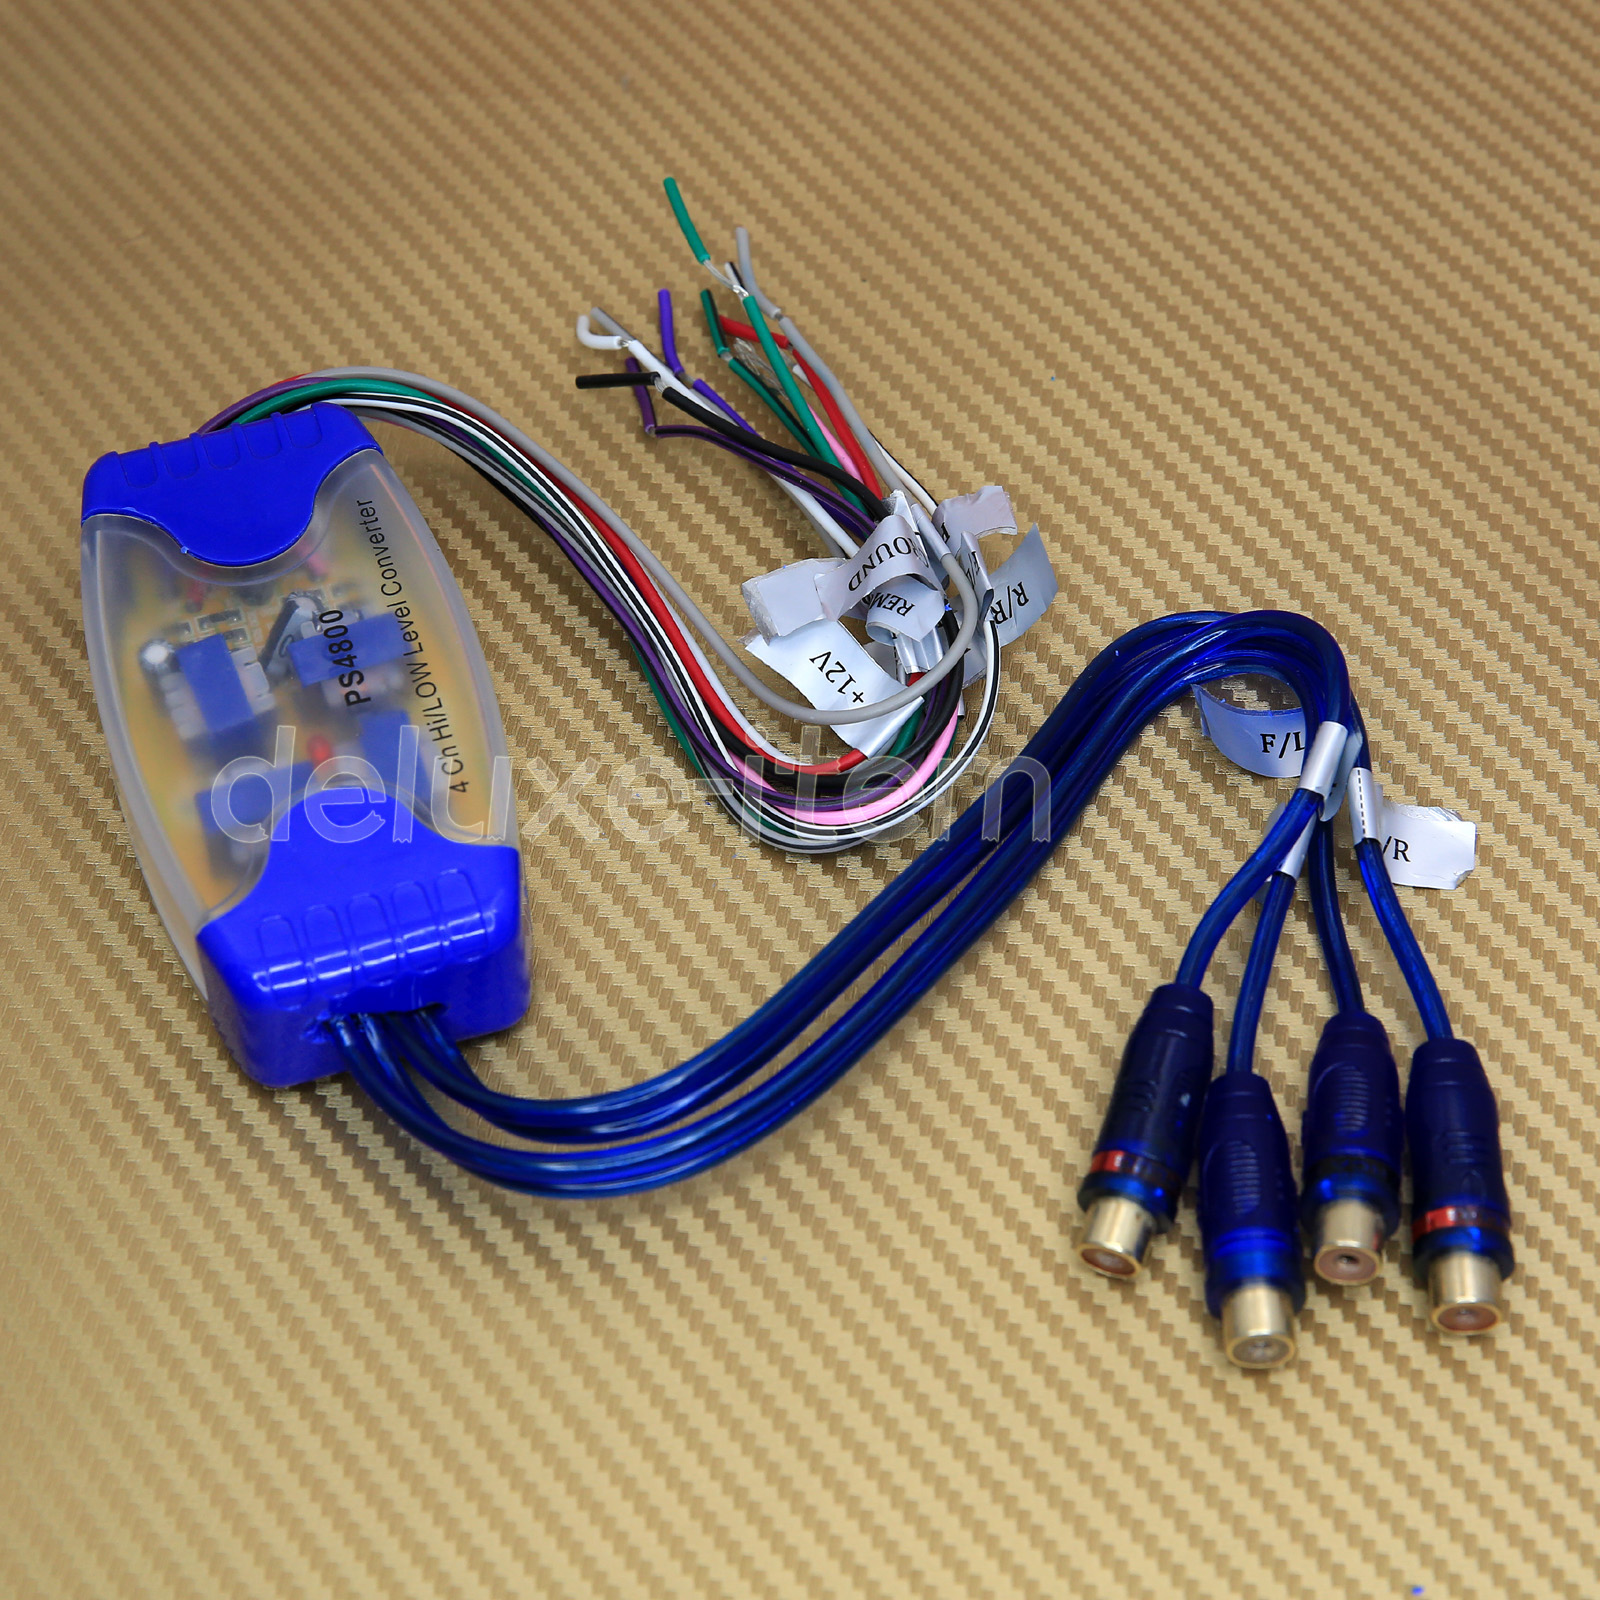 home audio subwoofer wiring configurations with Converter Car Audio Wiring Subwoofer on 121985930584 as well One 4 Ohm Dvc Sub Bridged 2 Channel   8 Ohm Load further Tv Speaker Wiring Diagram in addition 4 Channel   Wiring Subwoofer Diagrams additionally Woofer configurations.